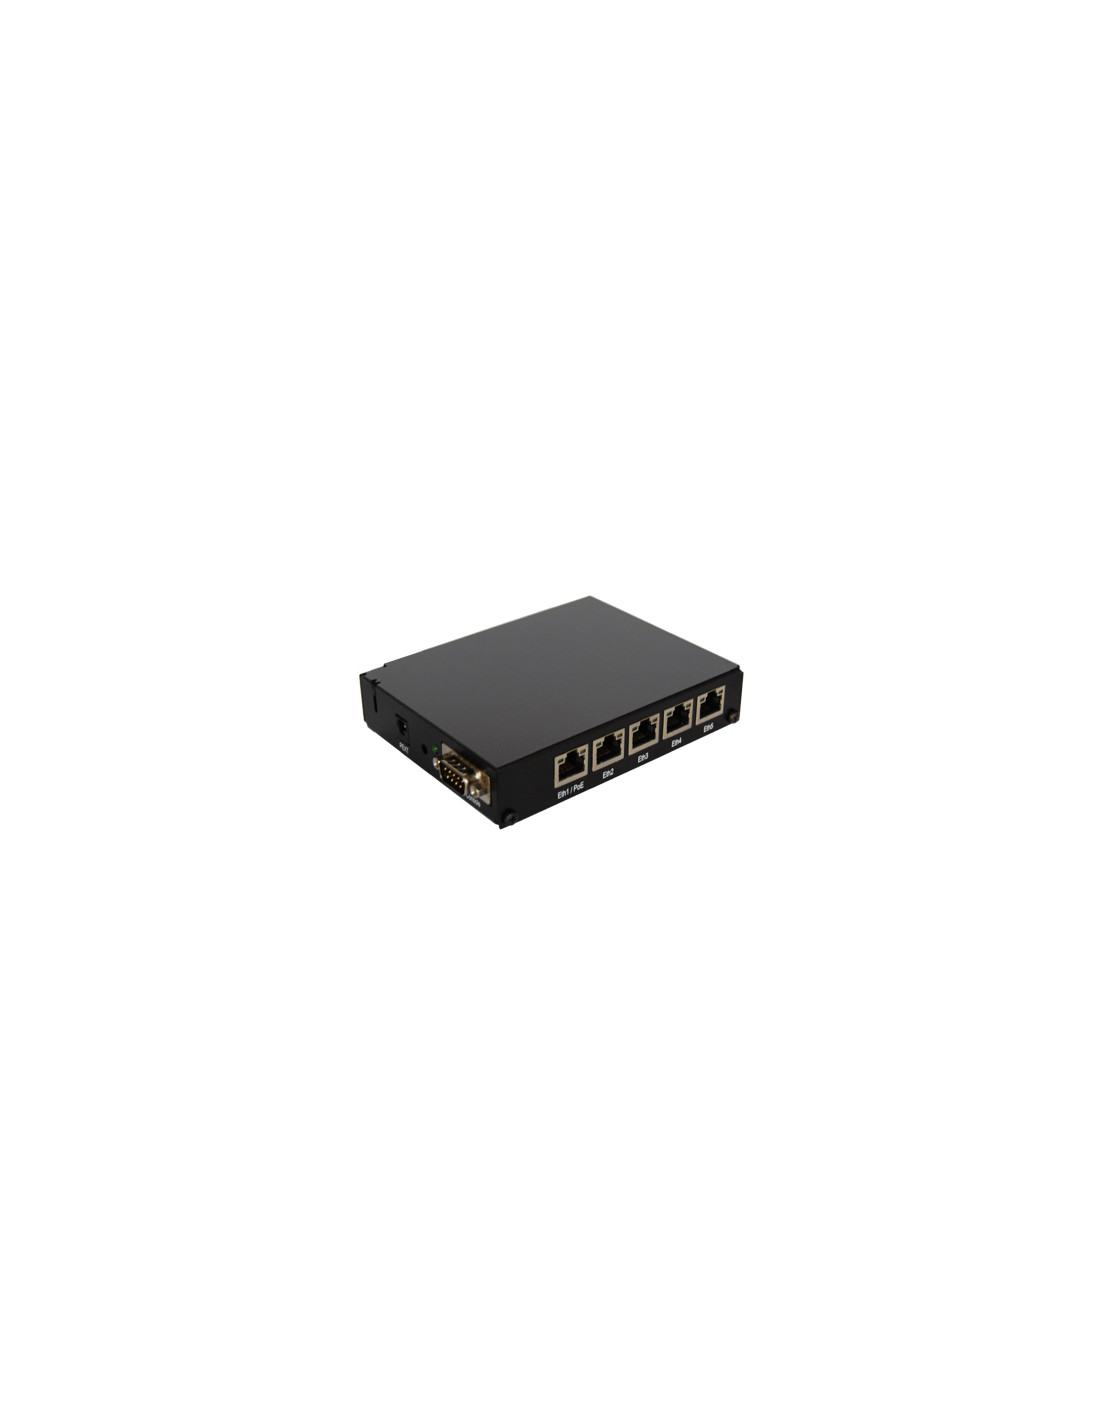 RB450Gx4-FULL | Shop MikroTik RouterBOARD Products